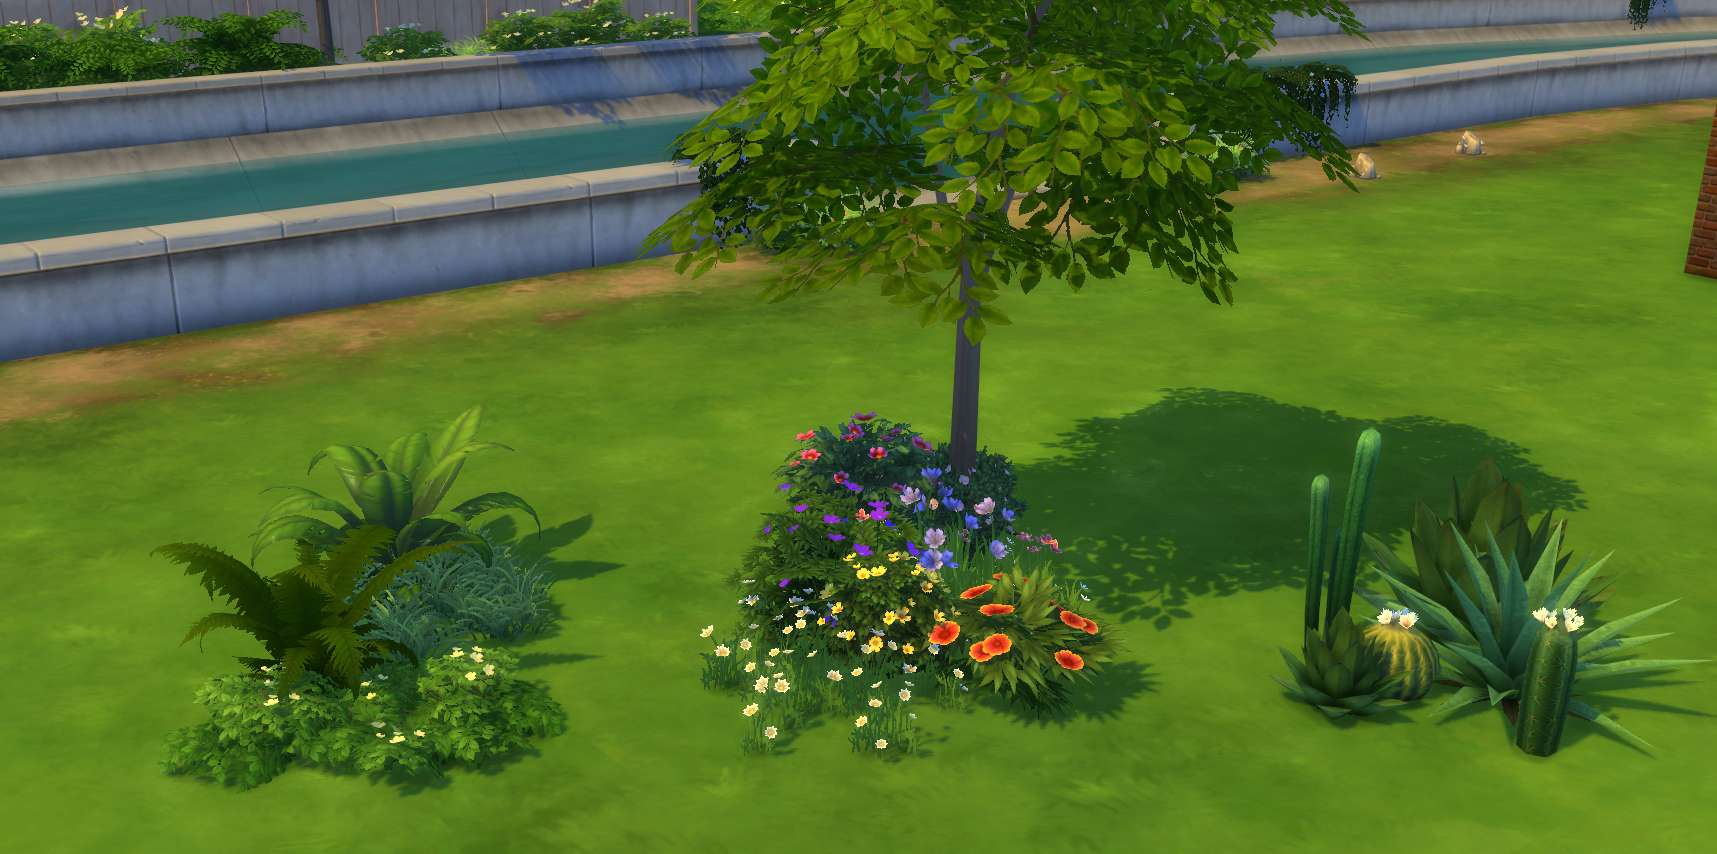 The sims 4 building landscaping pools indoor outdoor for Outside landscape